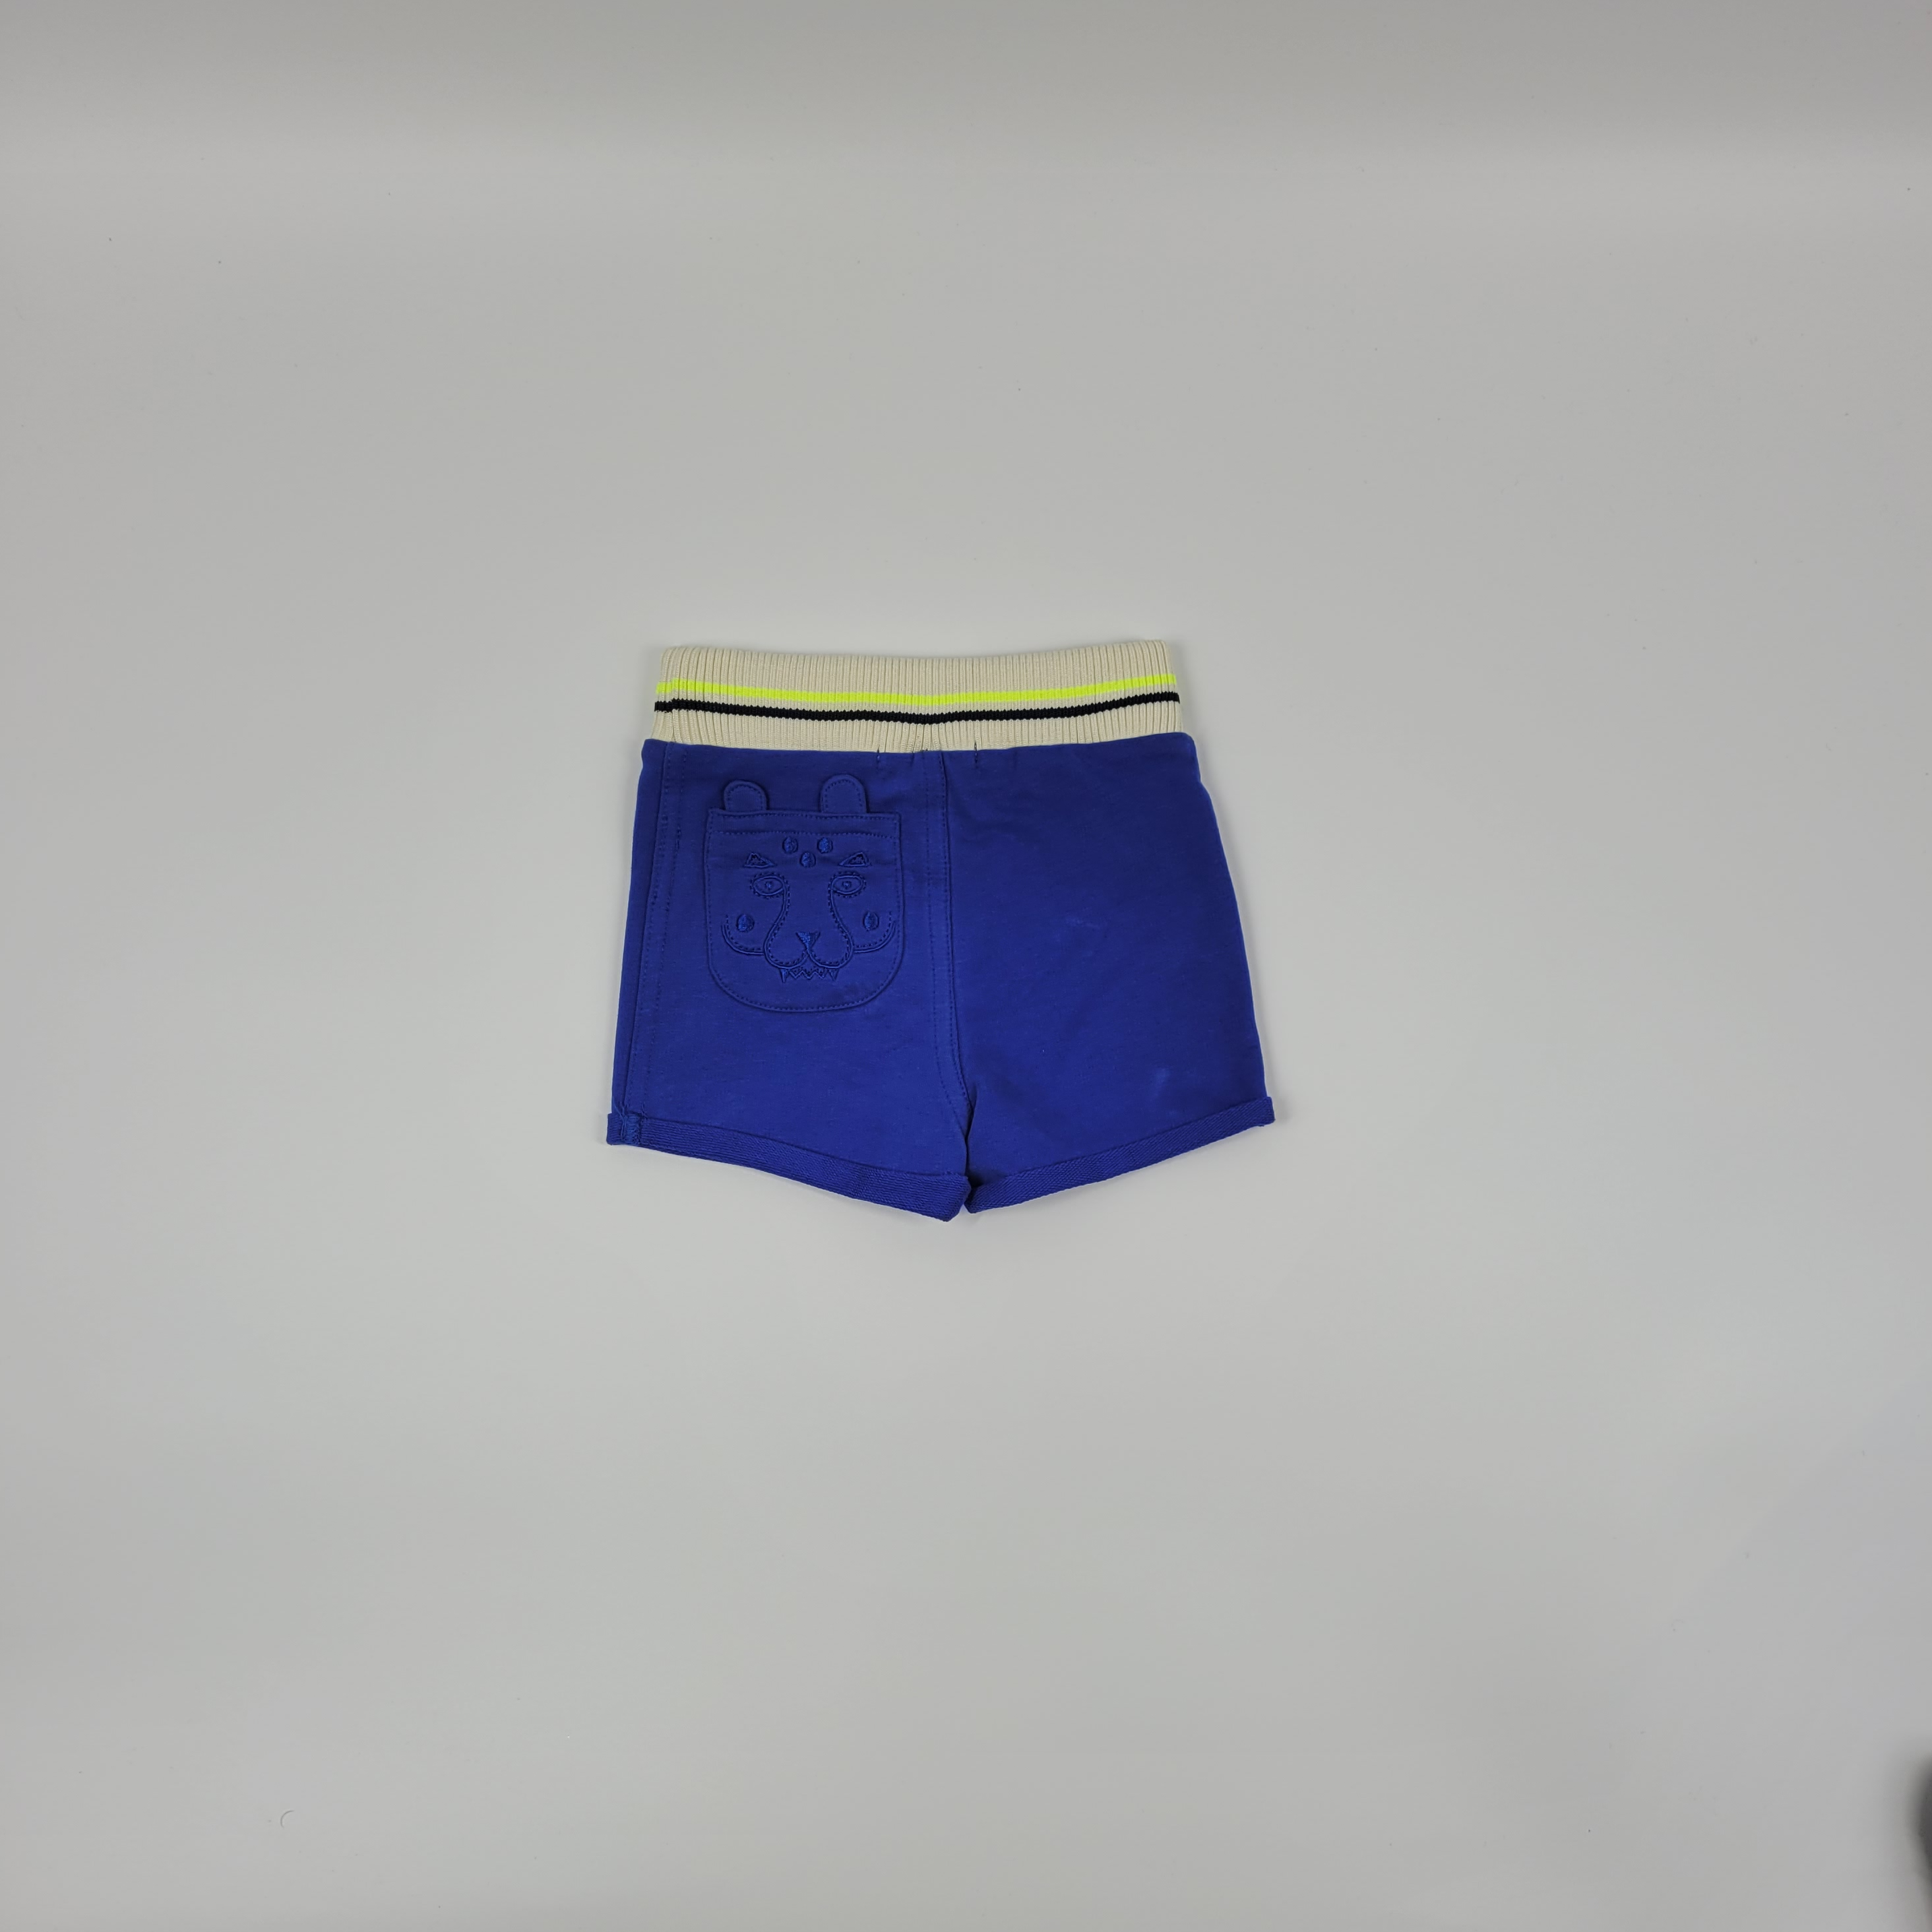 Billybandit Short in Blue and Cream